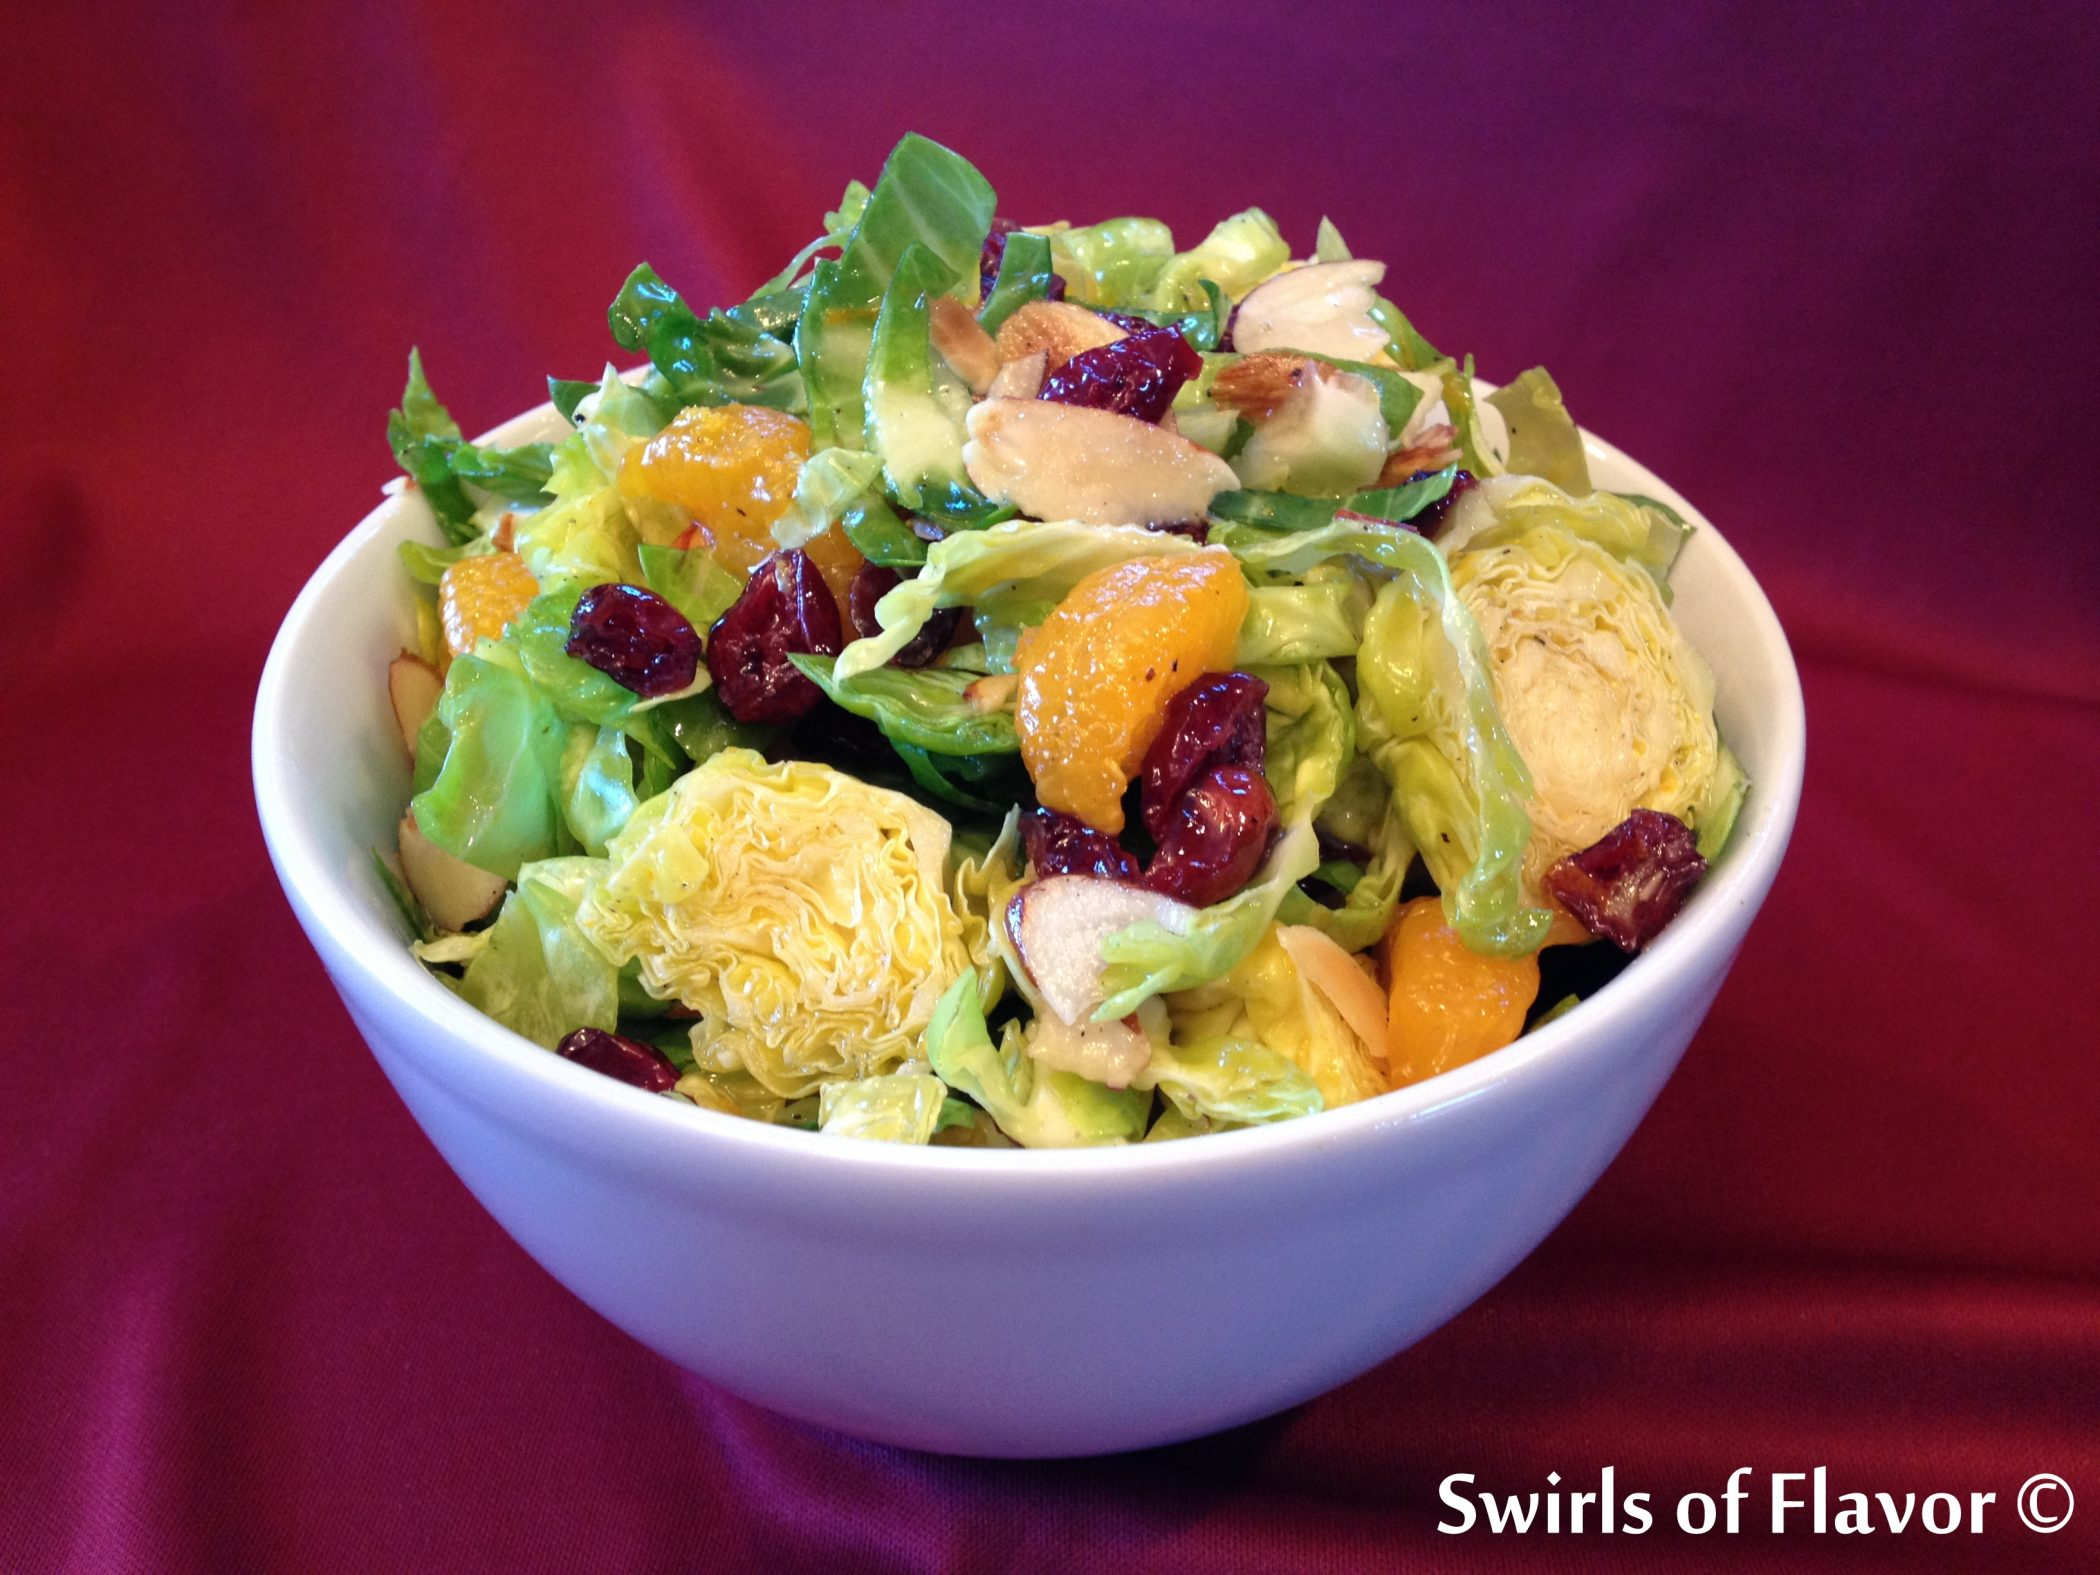 Shaved Cranberry Brussel Sprouts Salad with Orange Marmalade Vinaigrette in white bowl